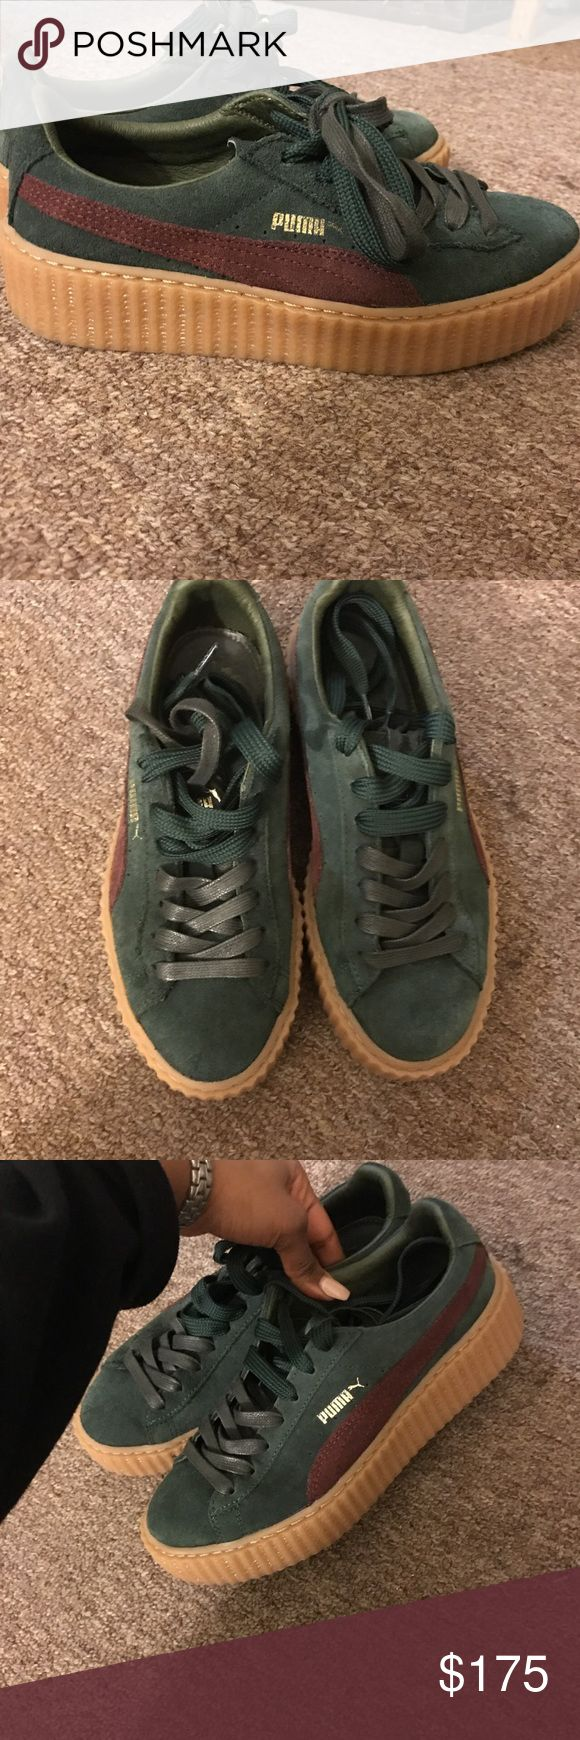 Rihanna puma fenty Rihanna puma fenty creepers. Originally bought for 275. 100% authentic. Price is negotiable. Don't wear them anymore unfortunately, trying to get rid of them asap. #creepers #fenty #puma Puma Shoes Sneakers